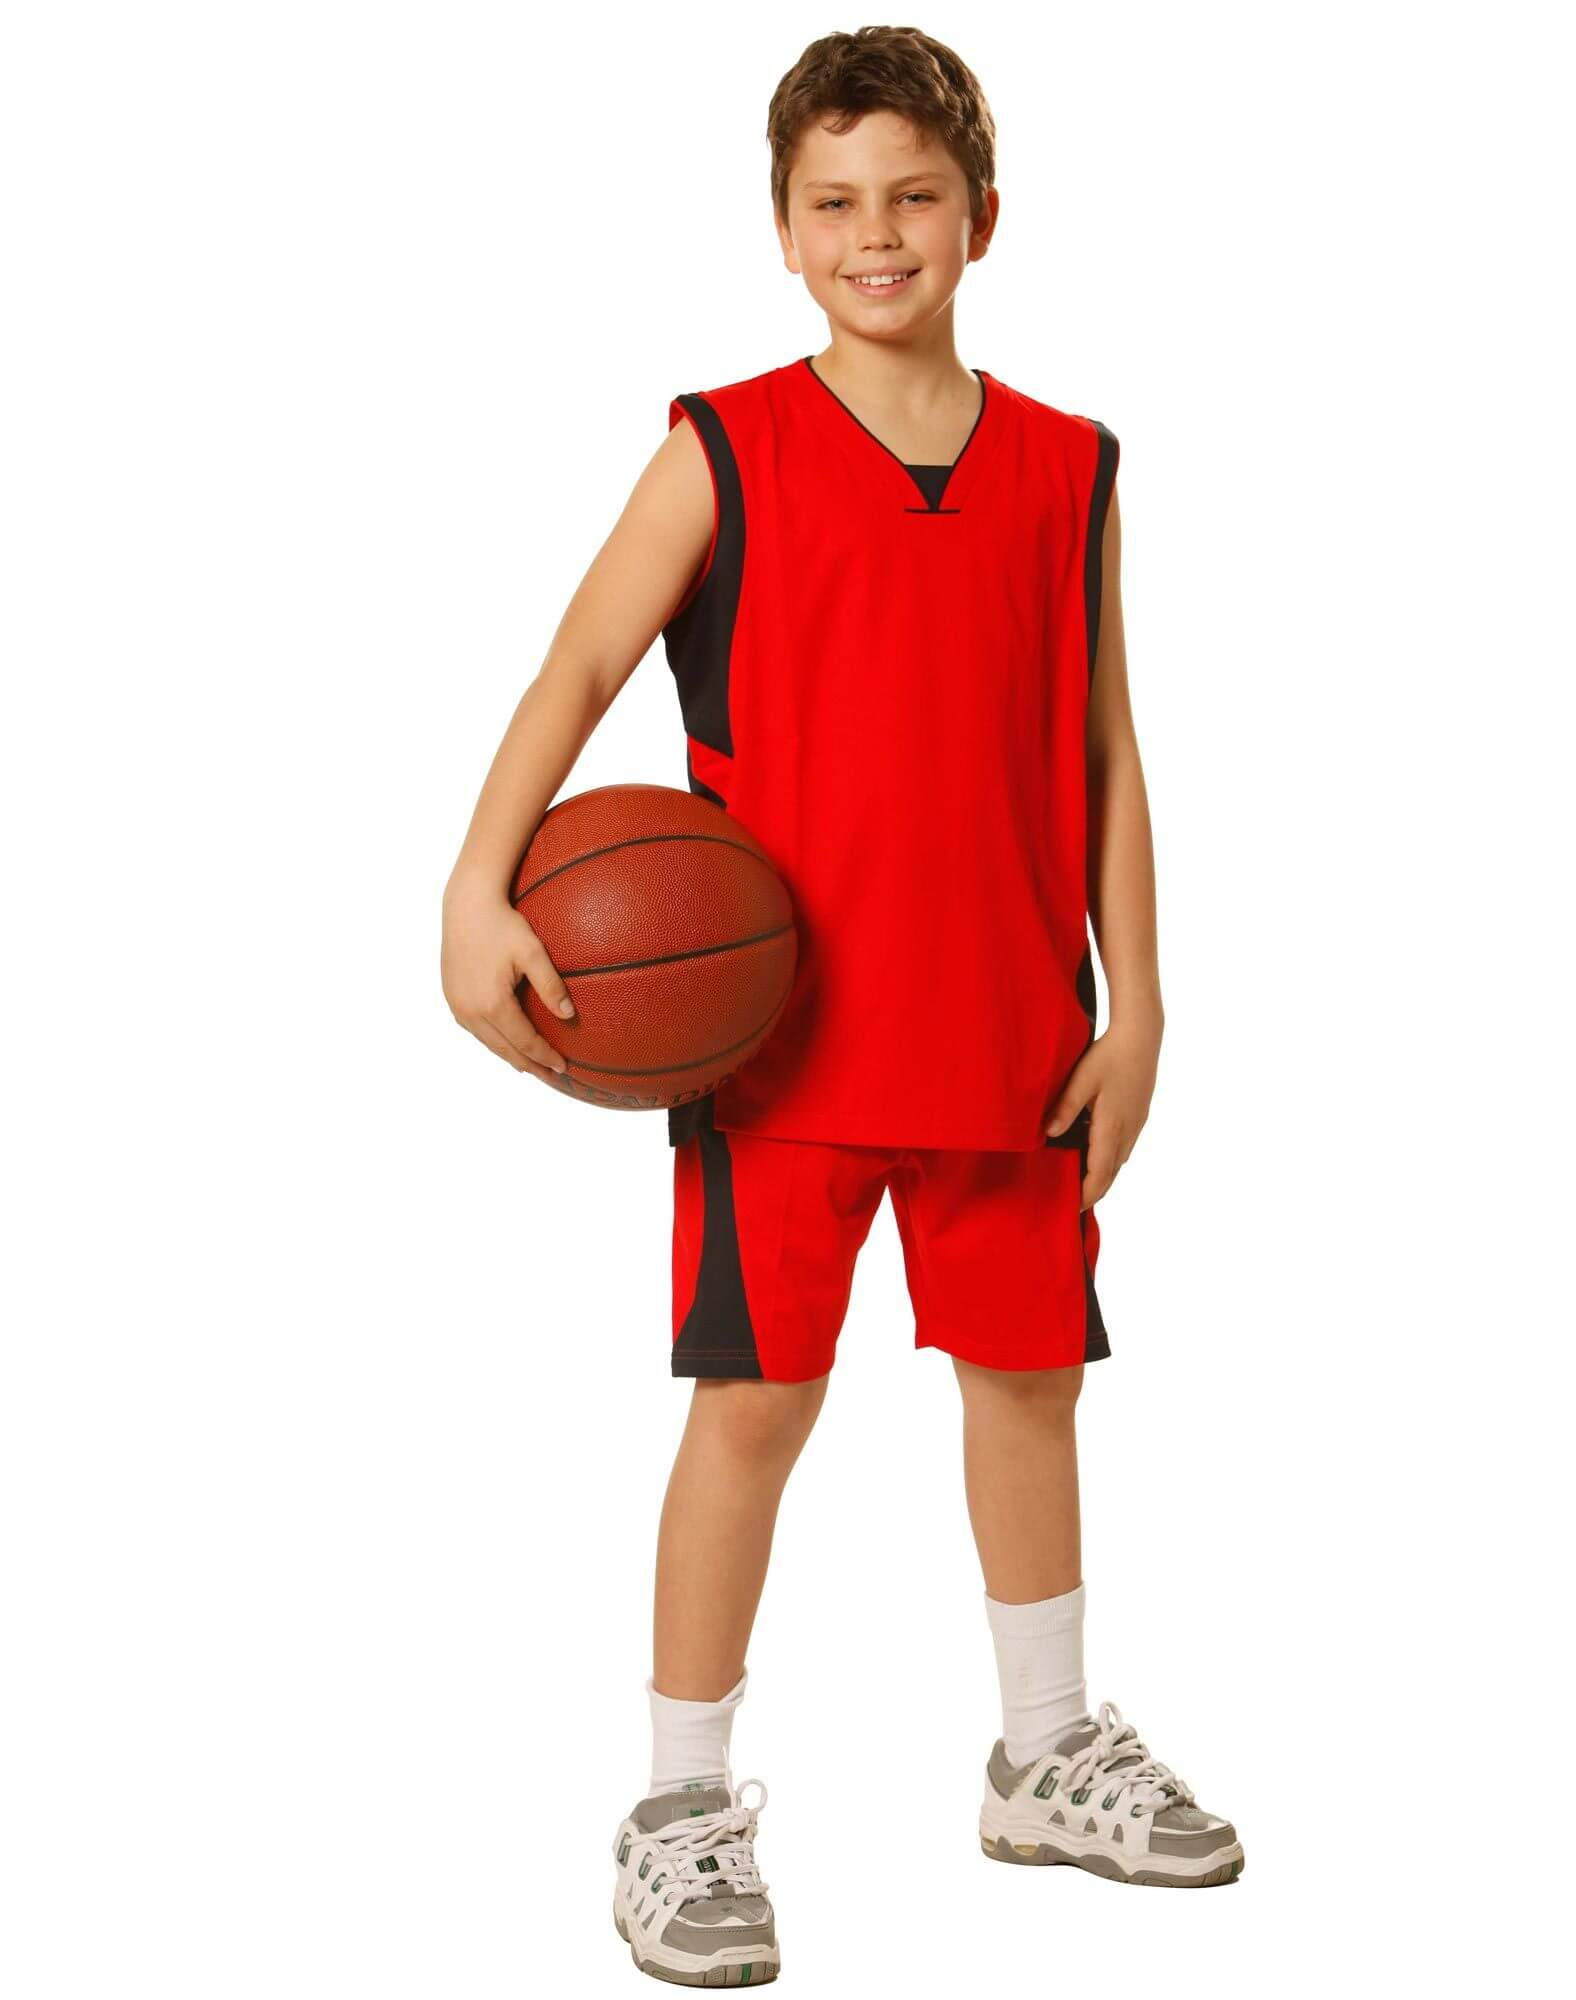 Kids Basketball Jerseys Manufacturers in Mumbai